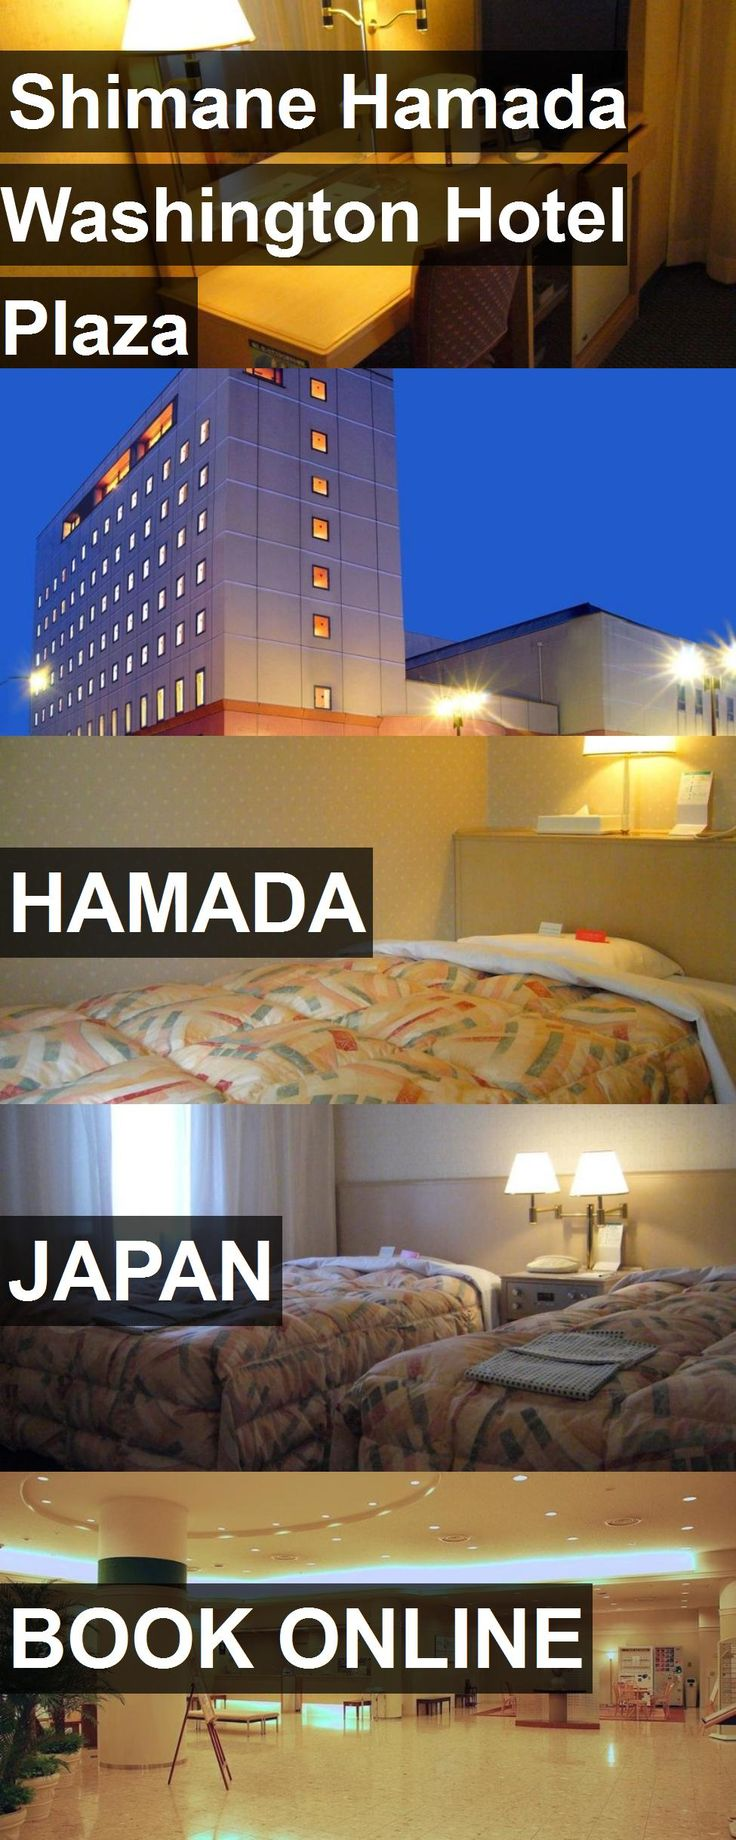 Shimane Hamada Washington Hotel Plaza in Hamada, Japan. For more information, photos, reviews and best prices please follow the link. #Japan #Hamada #travel #vacation #hotel